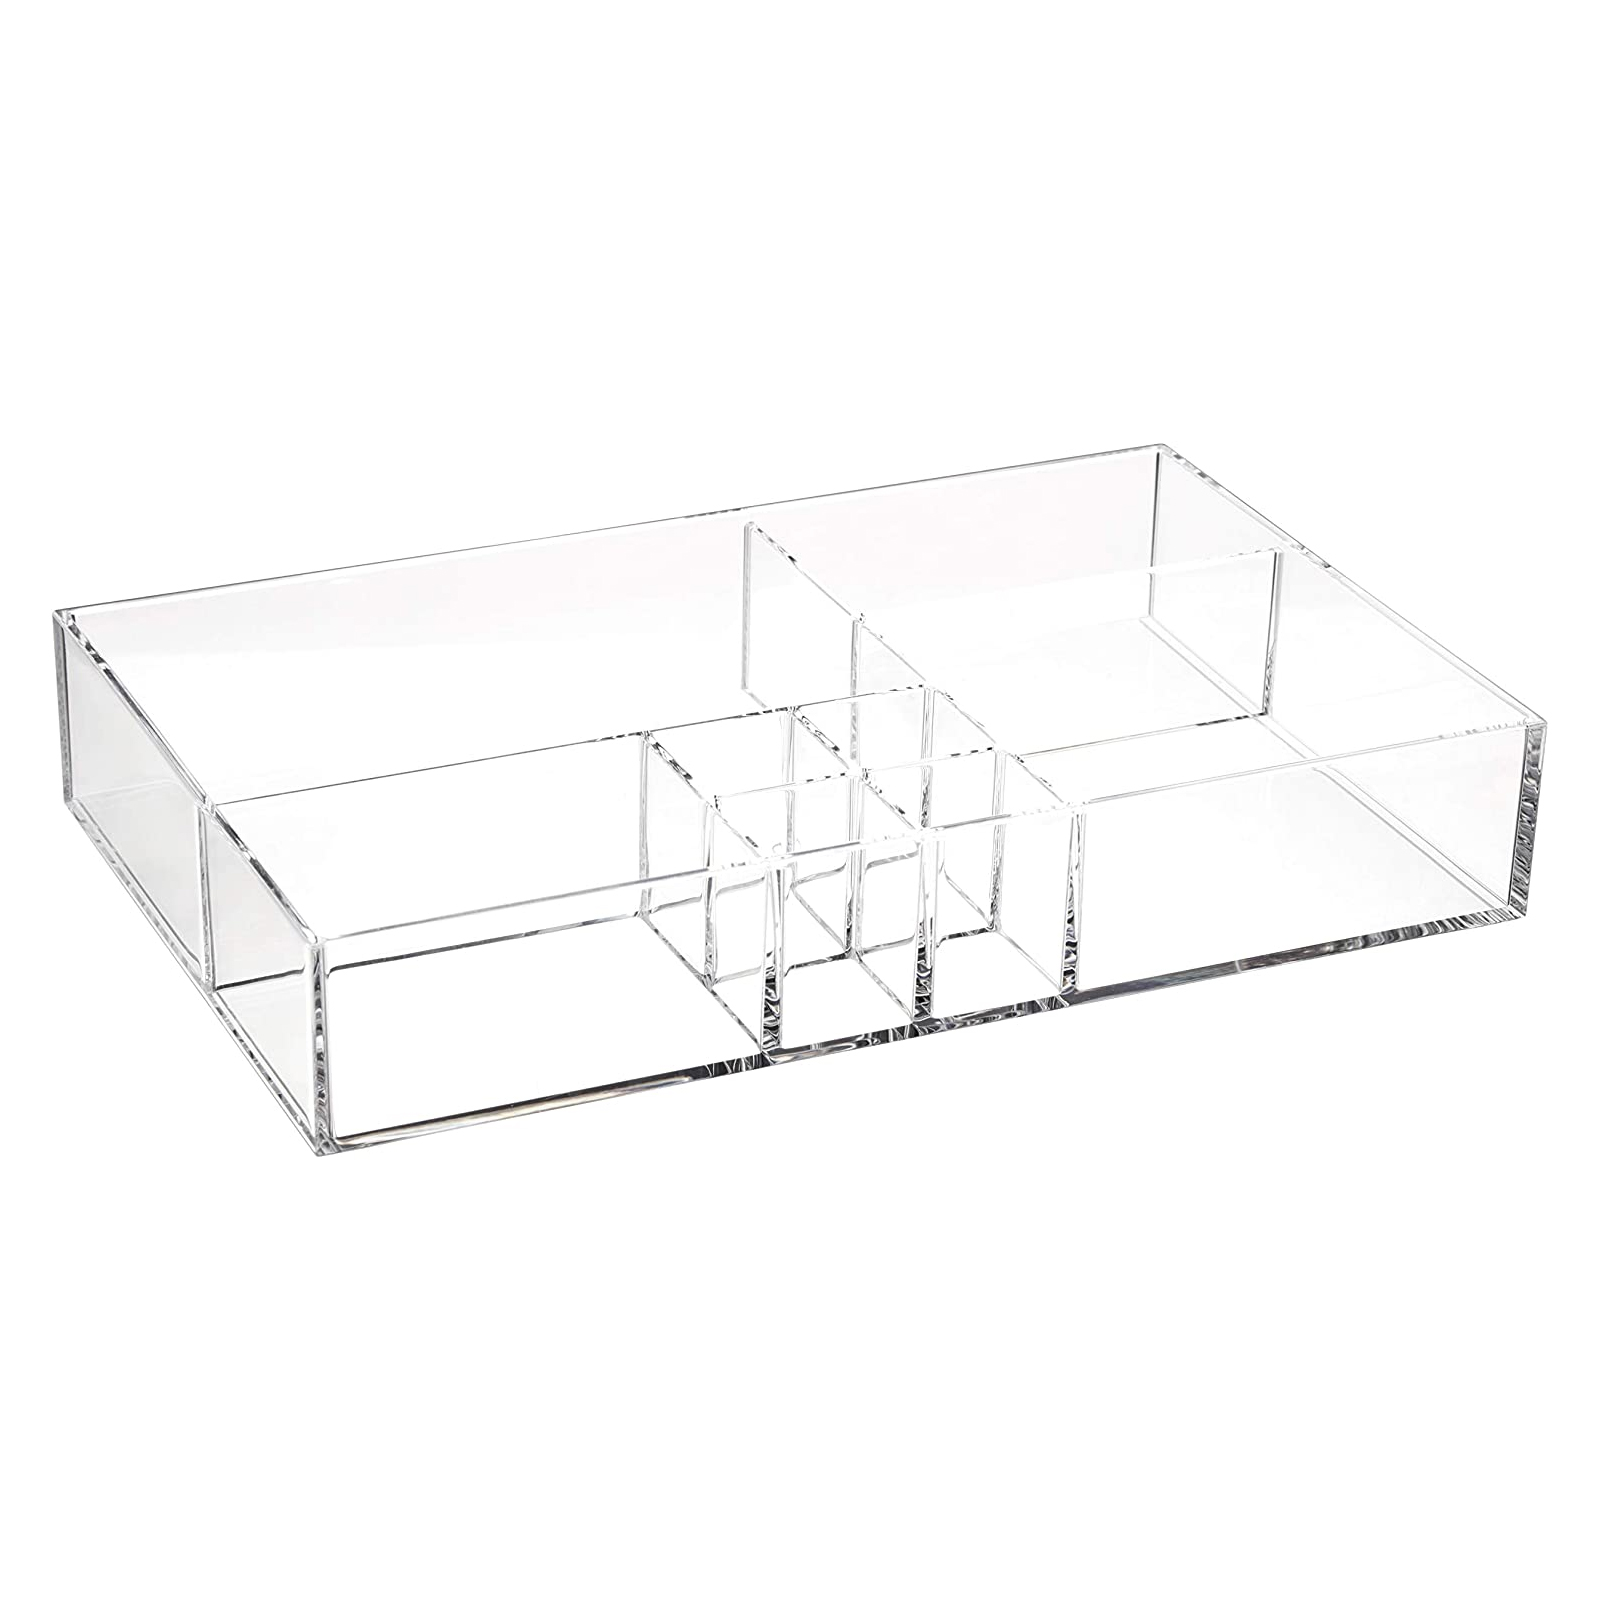 8-Compartment Durable Makeup Jewelry Accessories Storage Organizer Tray